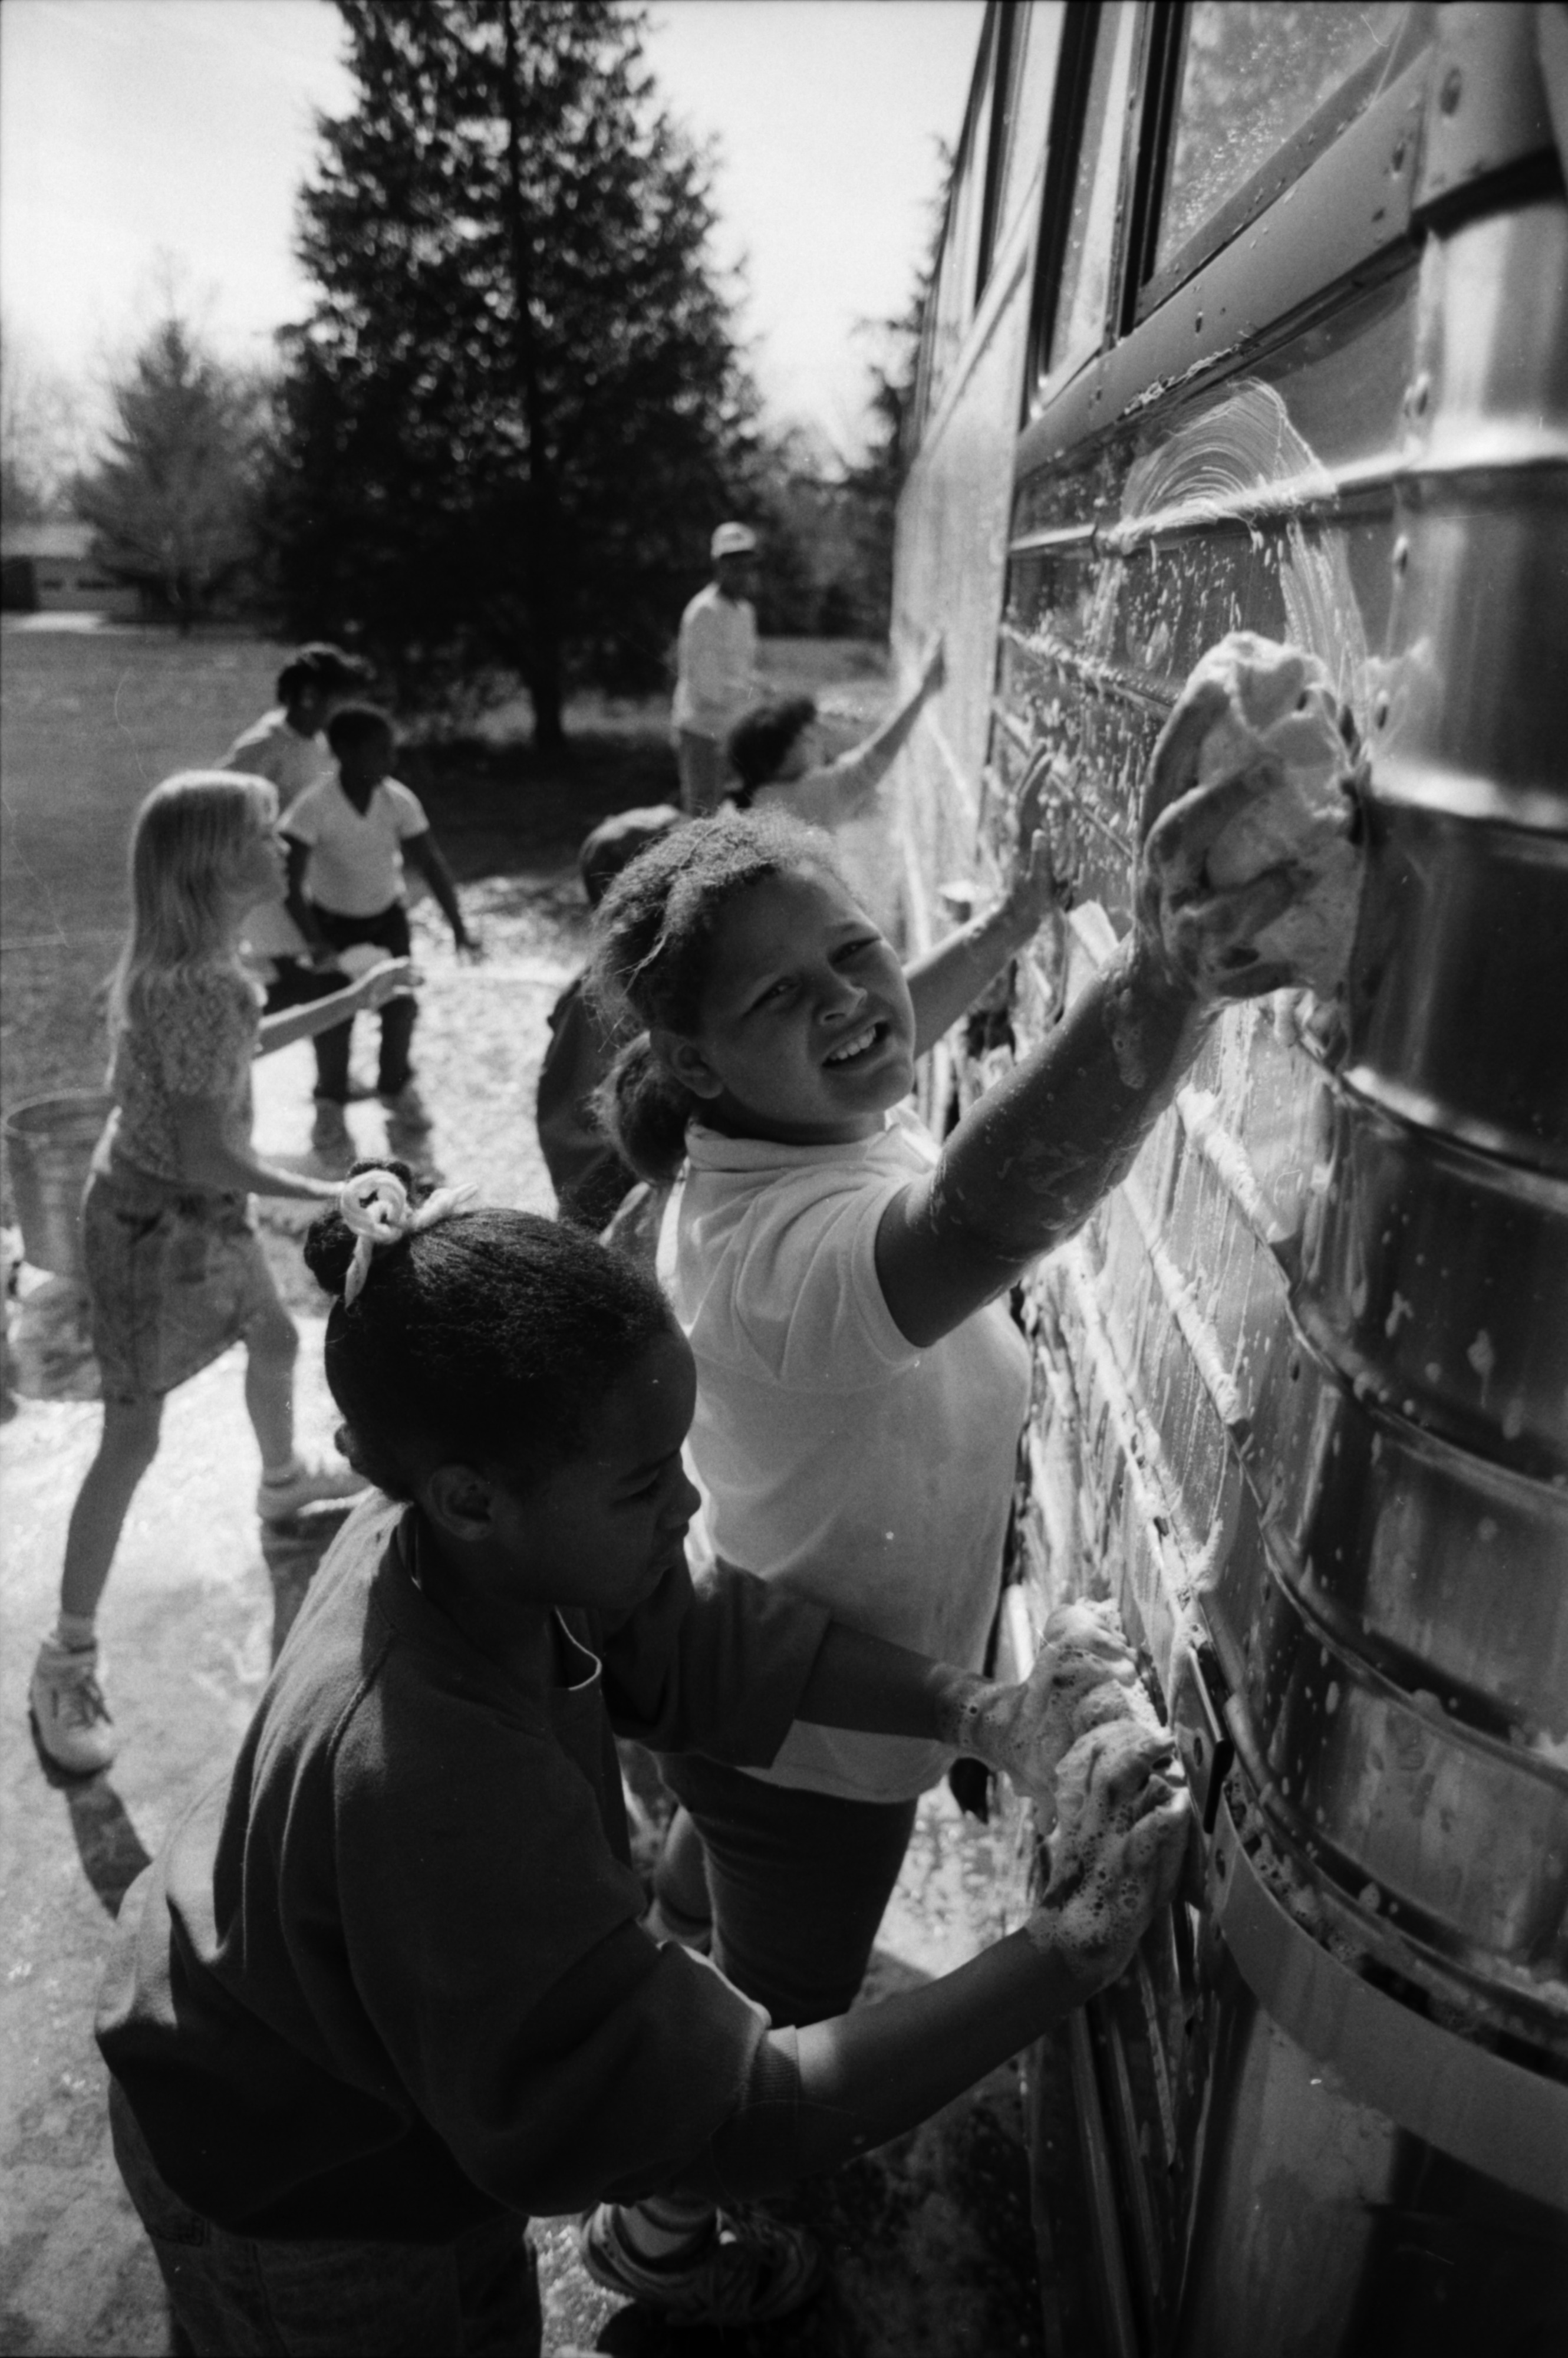 Peace Neighborhood Center Bus Wash Raises Money for Summer Camp, May 1988 image